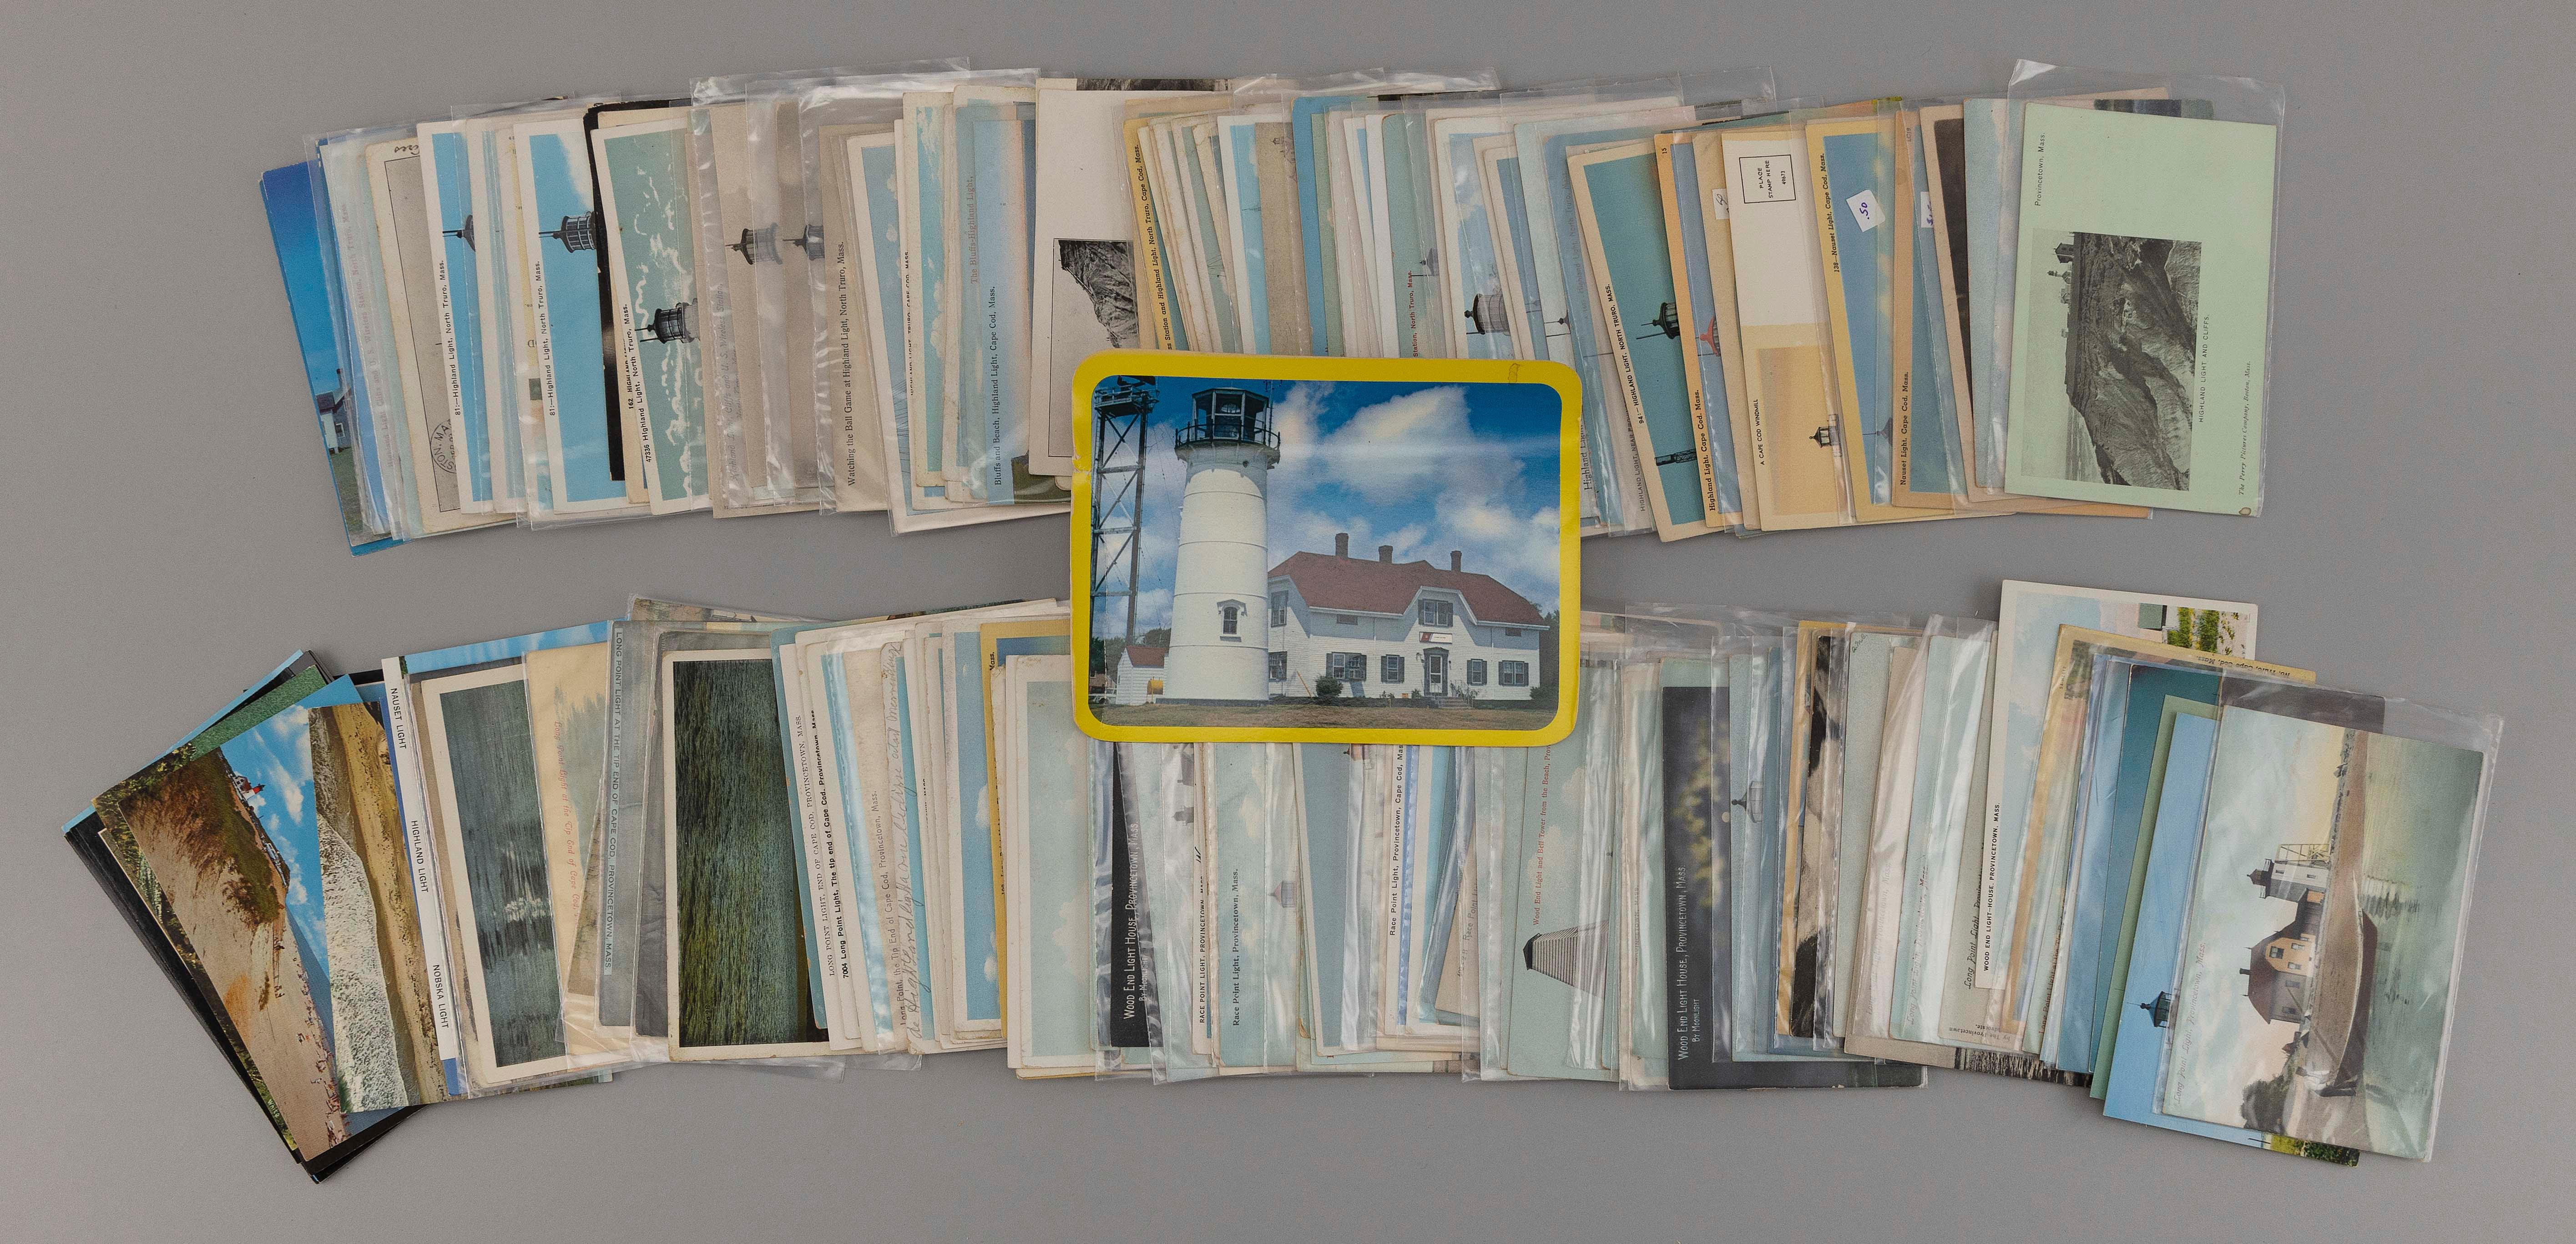 (CAPE COD: PROVINCETOWN AND NORTH TRURO LIGHTHOUSES) 210 POSTCARDS 119 Provincetown: Race Point Light, Wood End Light, Long Point Li...